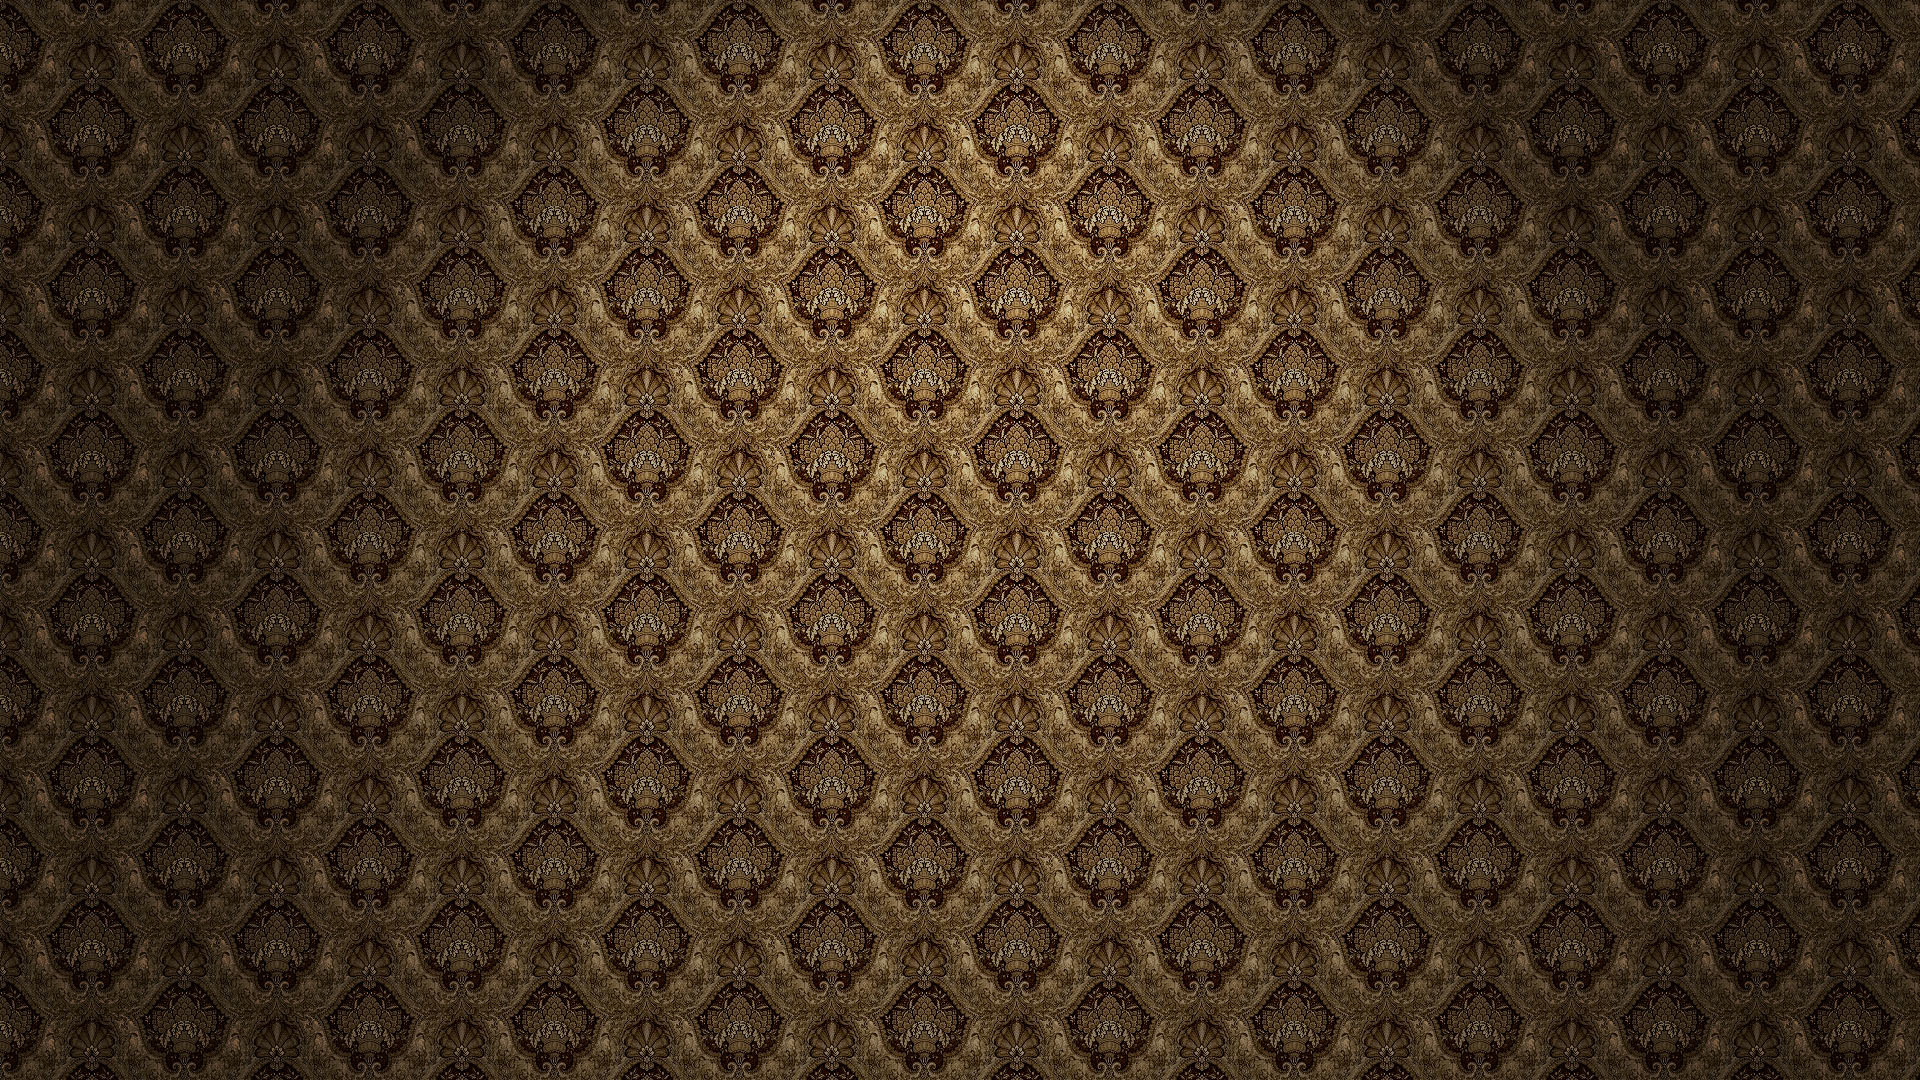 White And Gold Pattern Wallpaper   WeSharePics 1920x1080